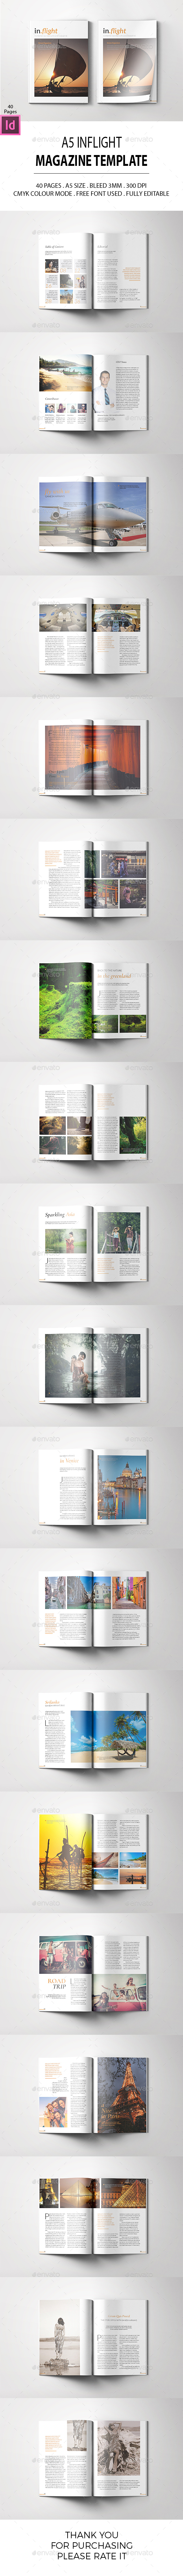 A5 Inflight Magazine Template - Magazines Print Templates